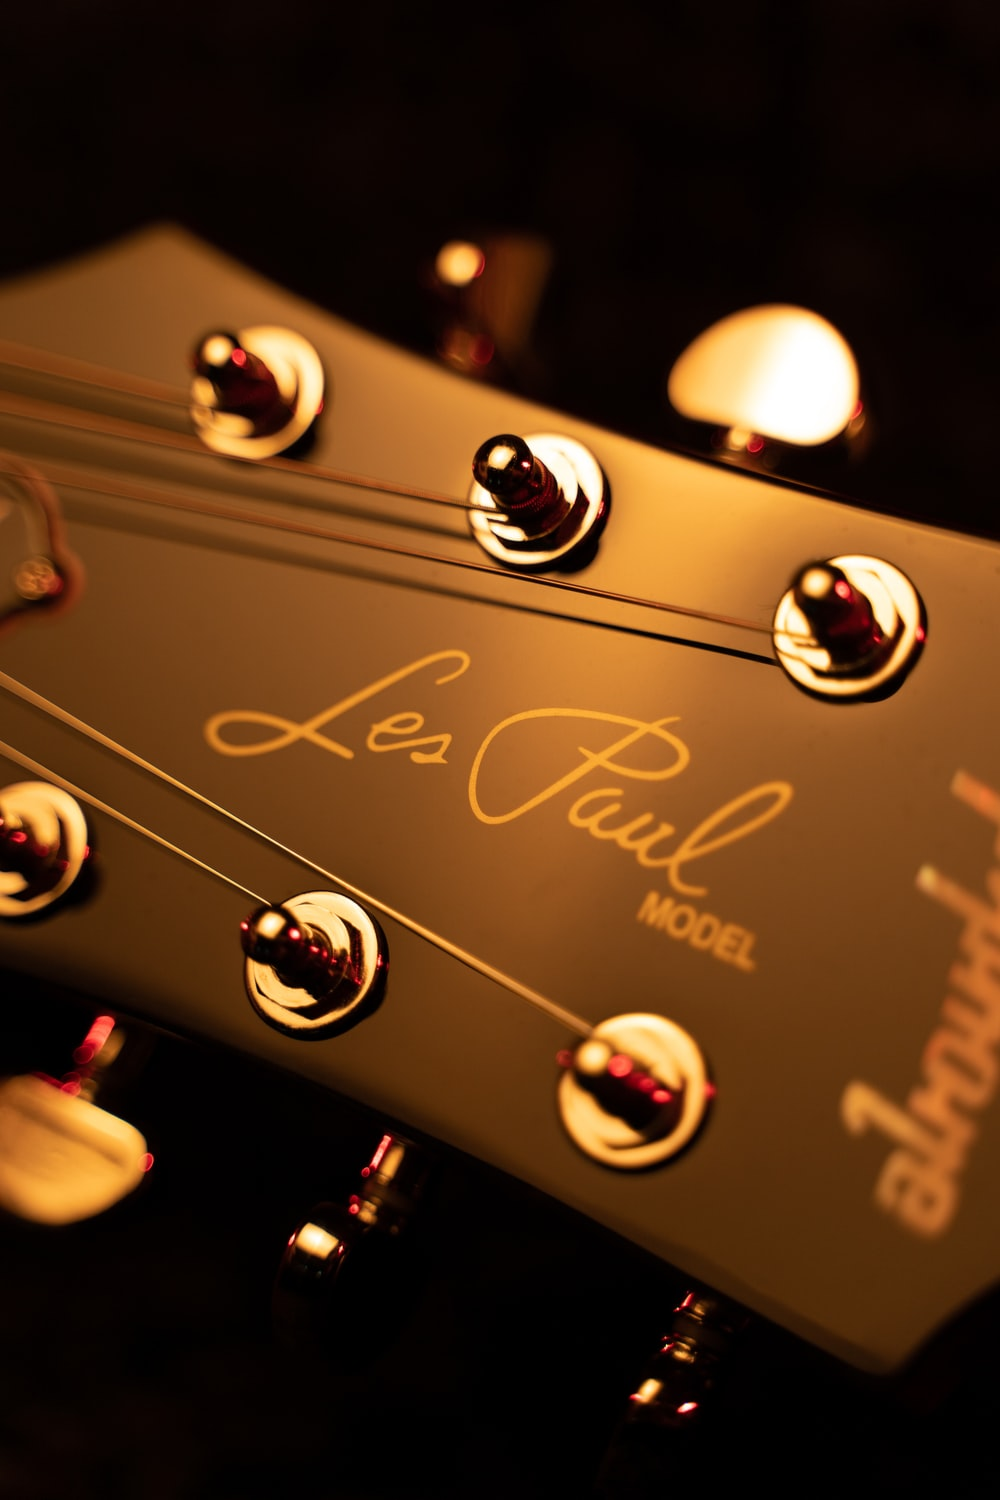 brown guitar headstock in close up photography